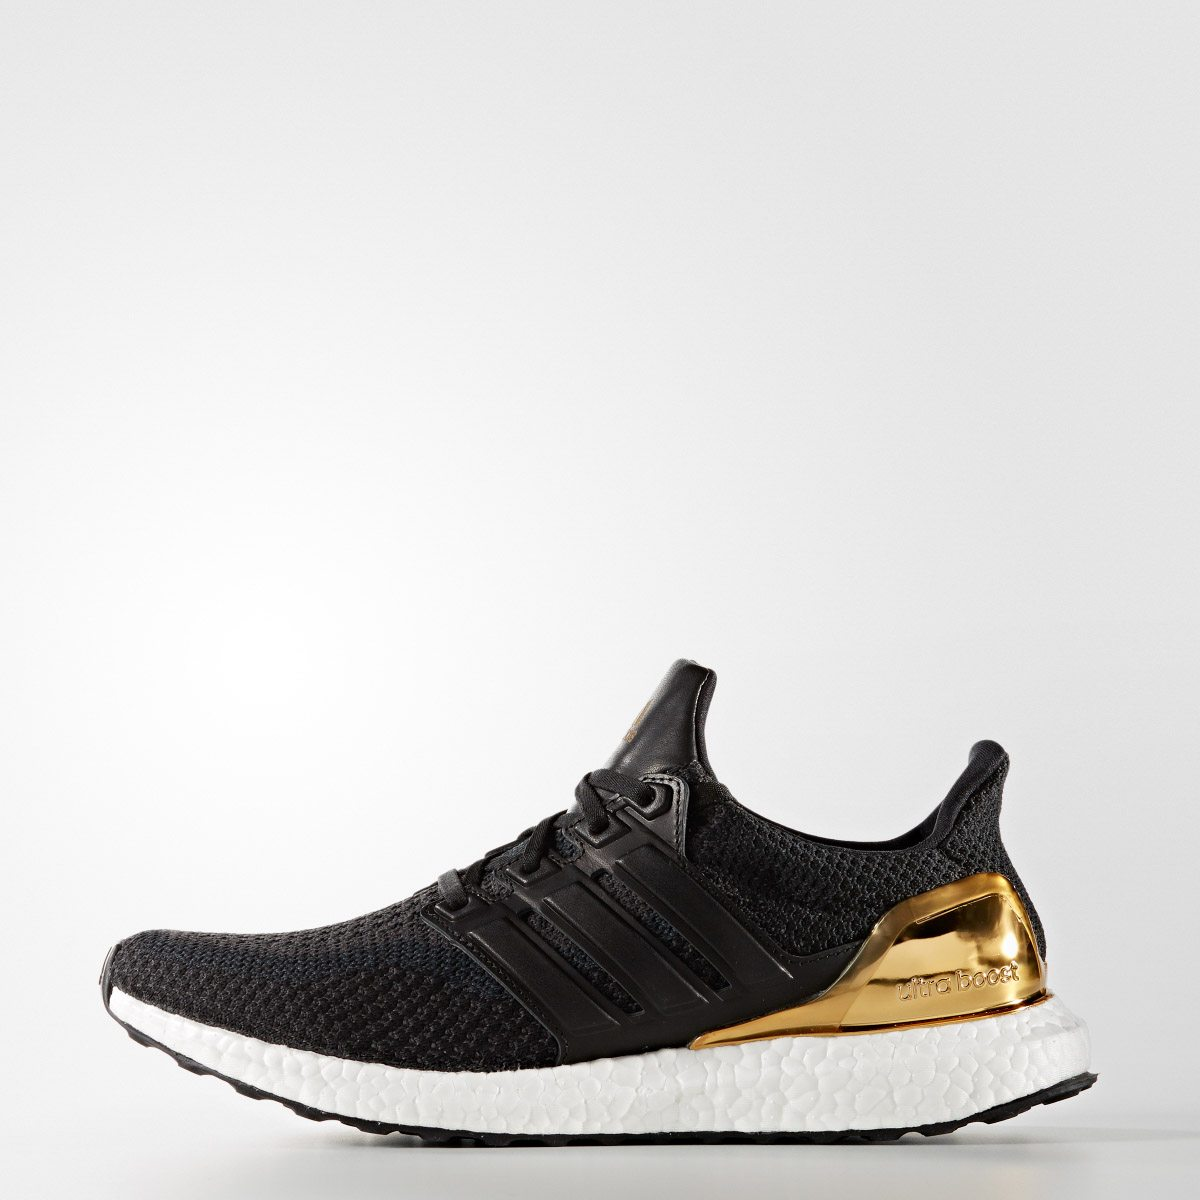 adidas Ultra Boost Metallic Pack 5